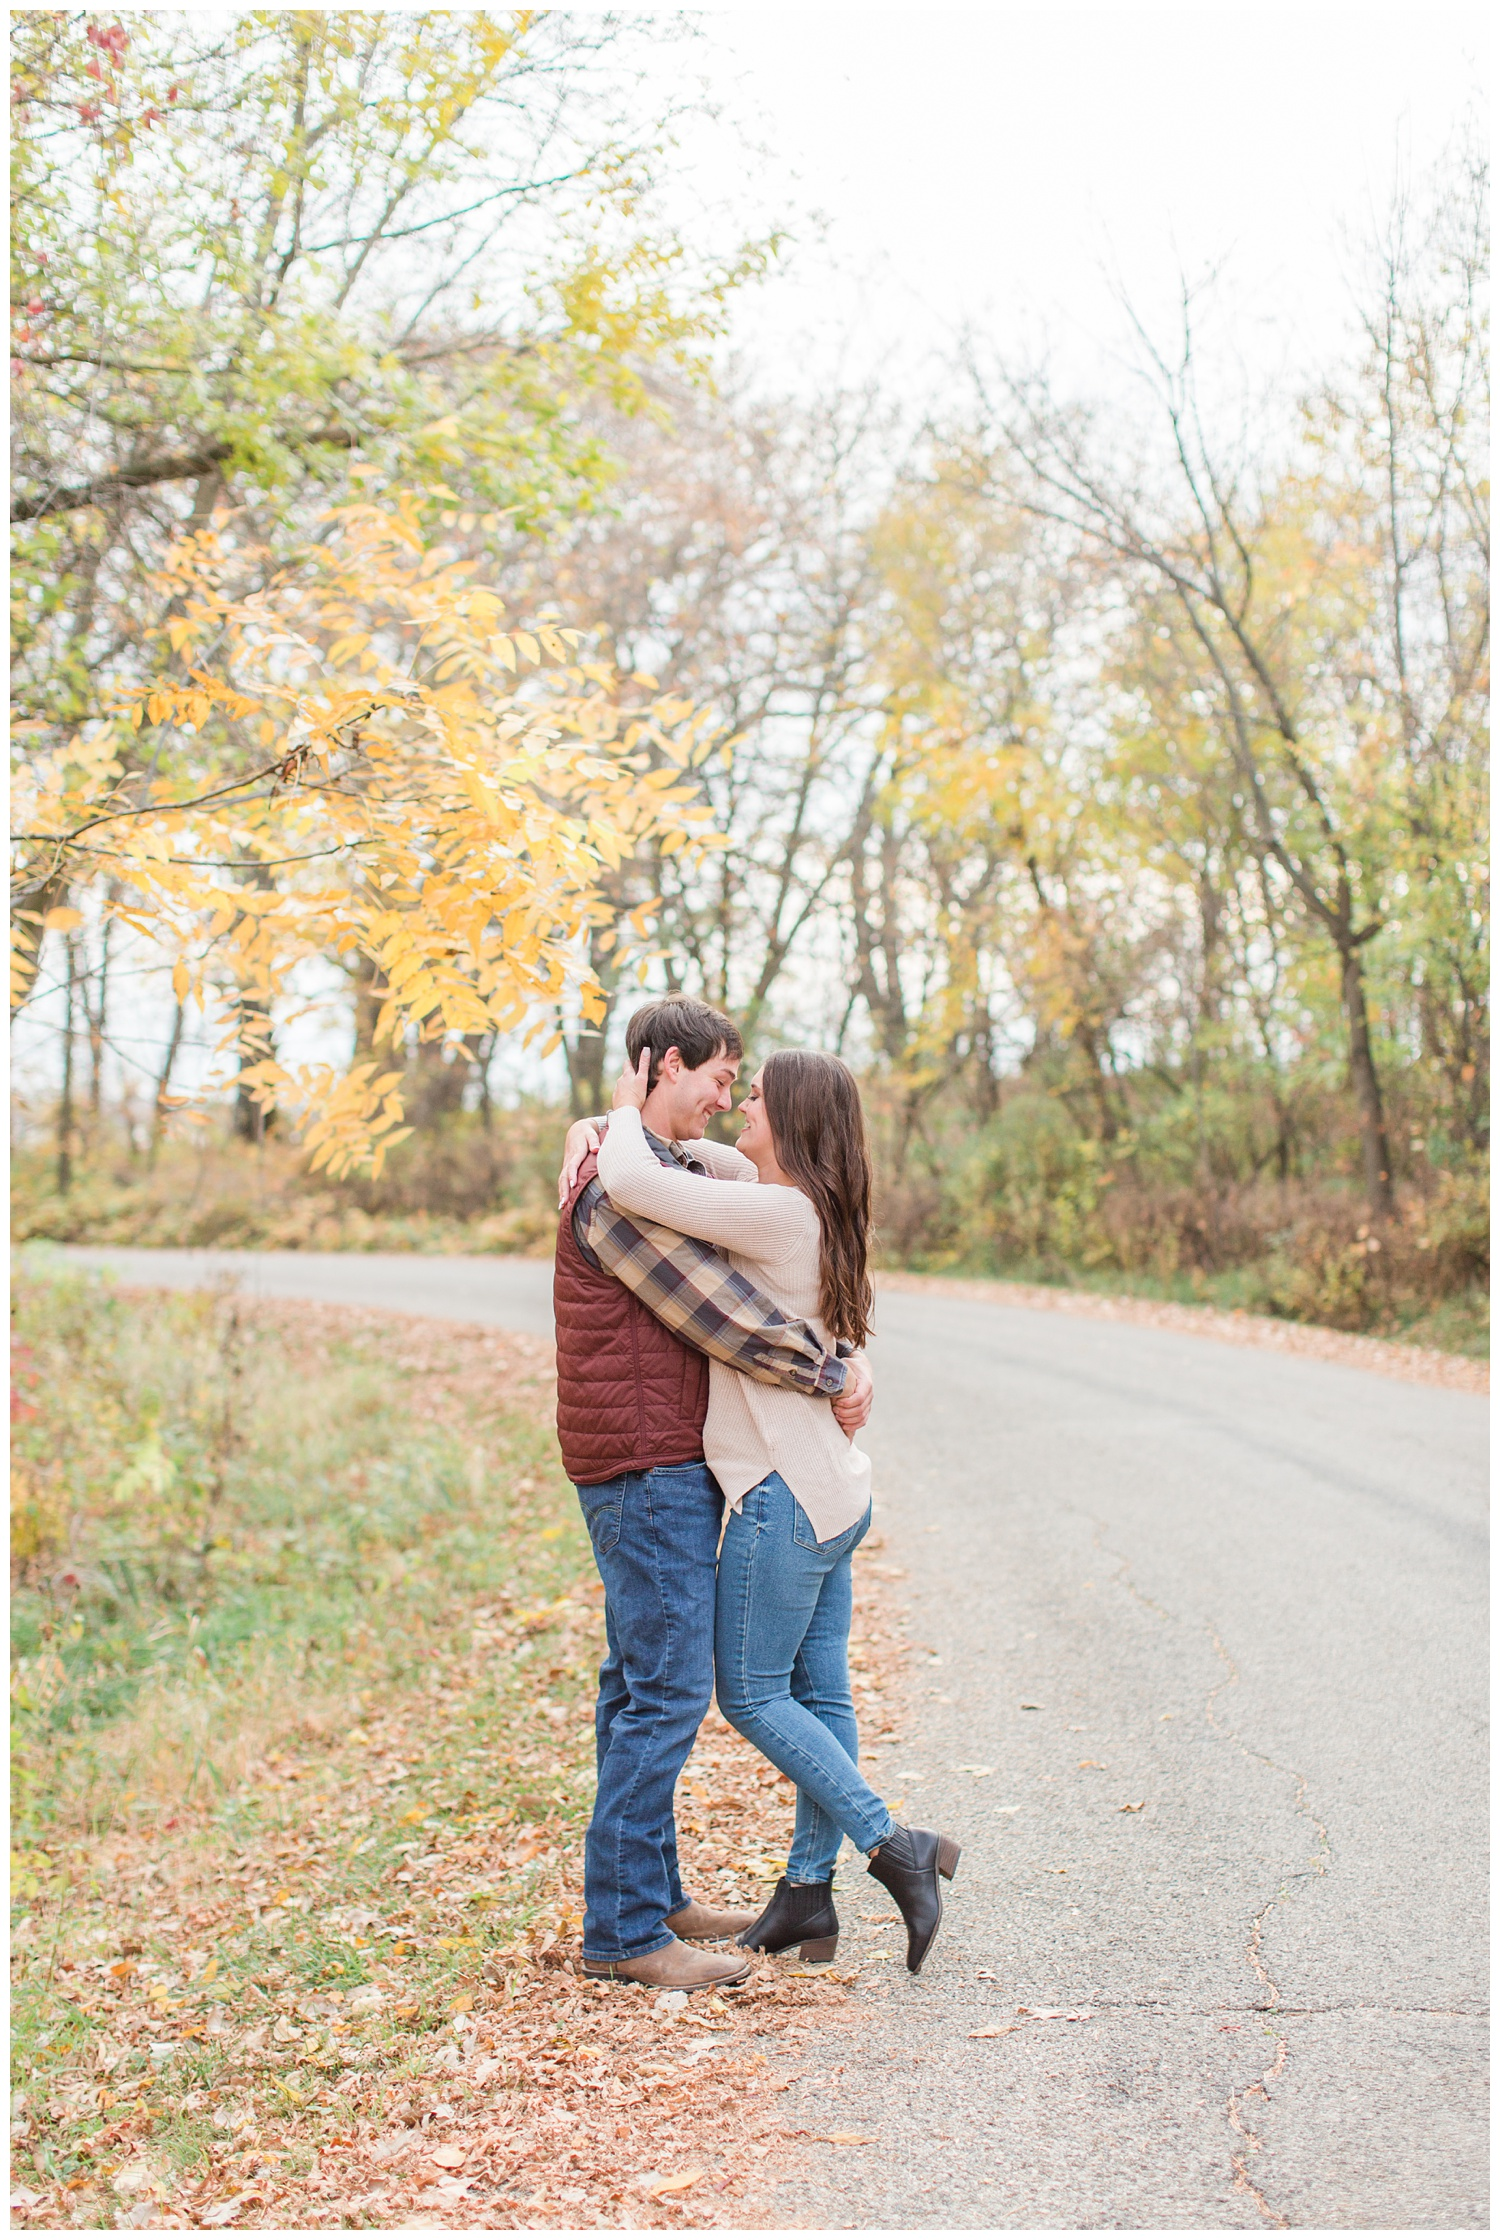 Fall in Iowa, Jenna embraces Brady in the middle of an autumn path at Lost Island Nature Center   CB Studio